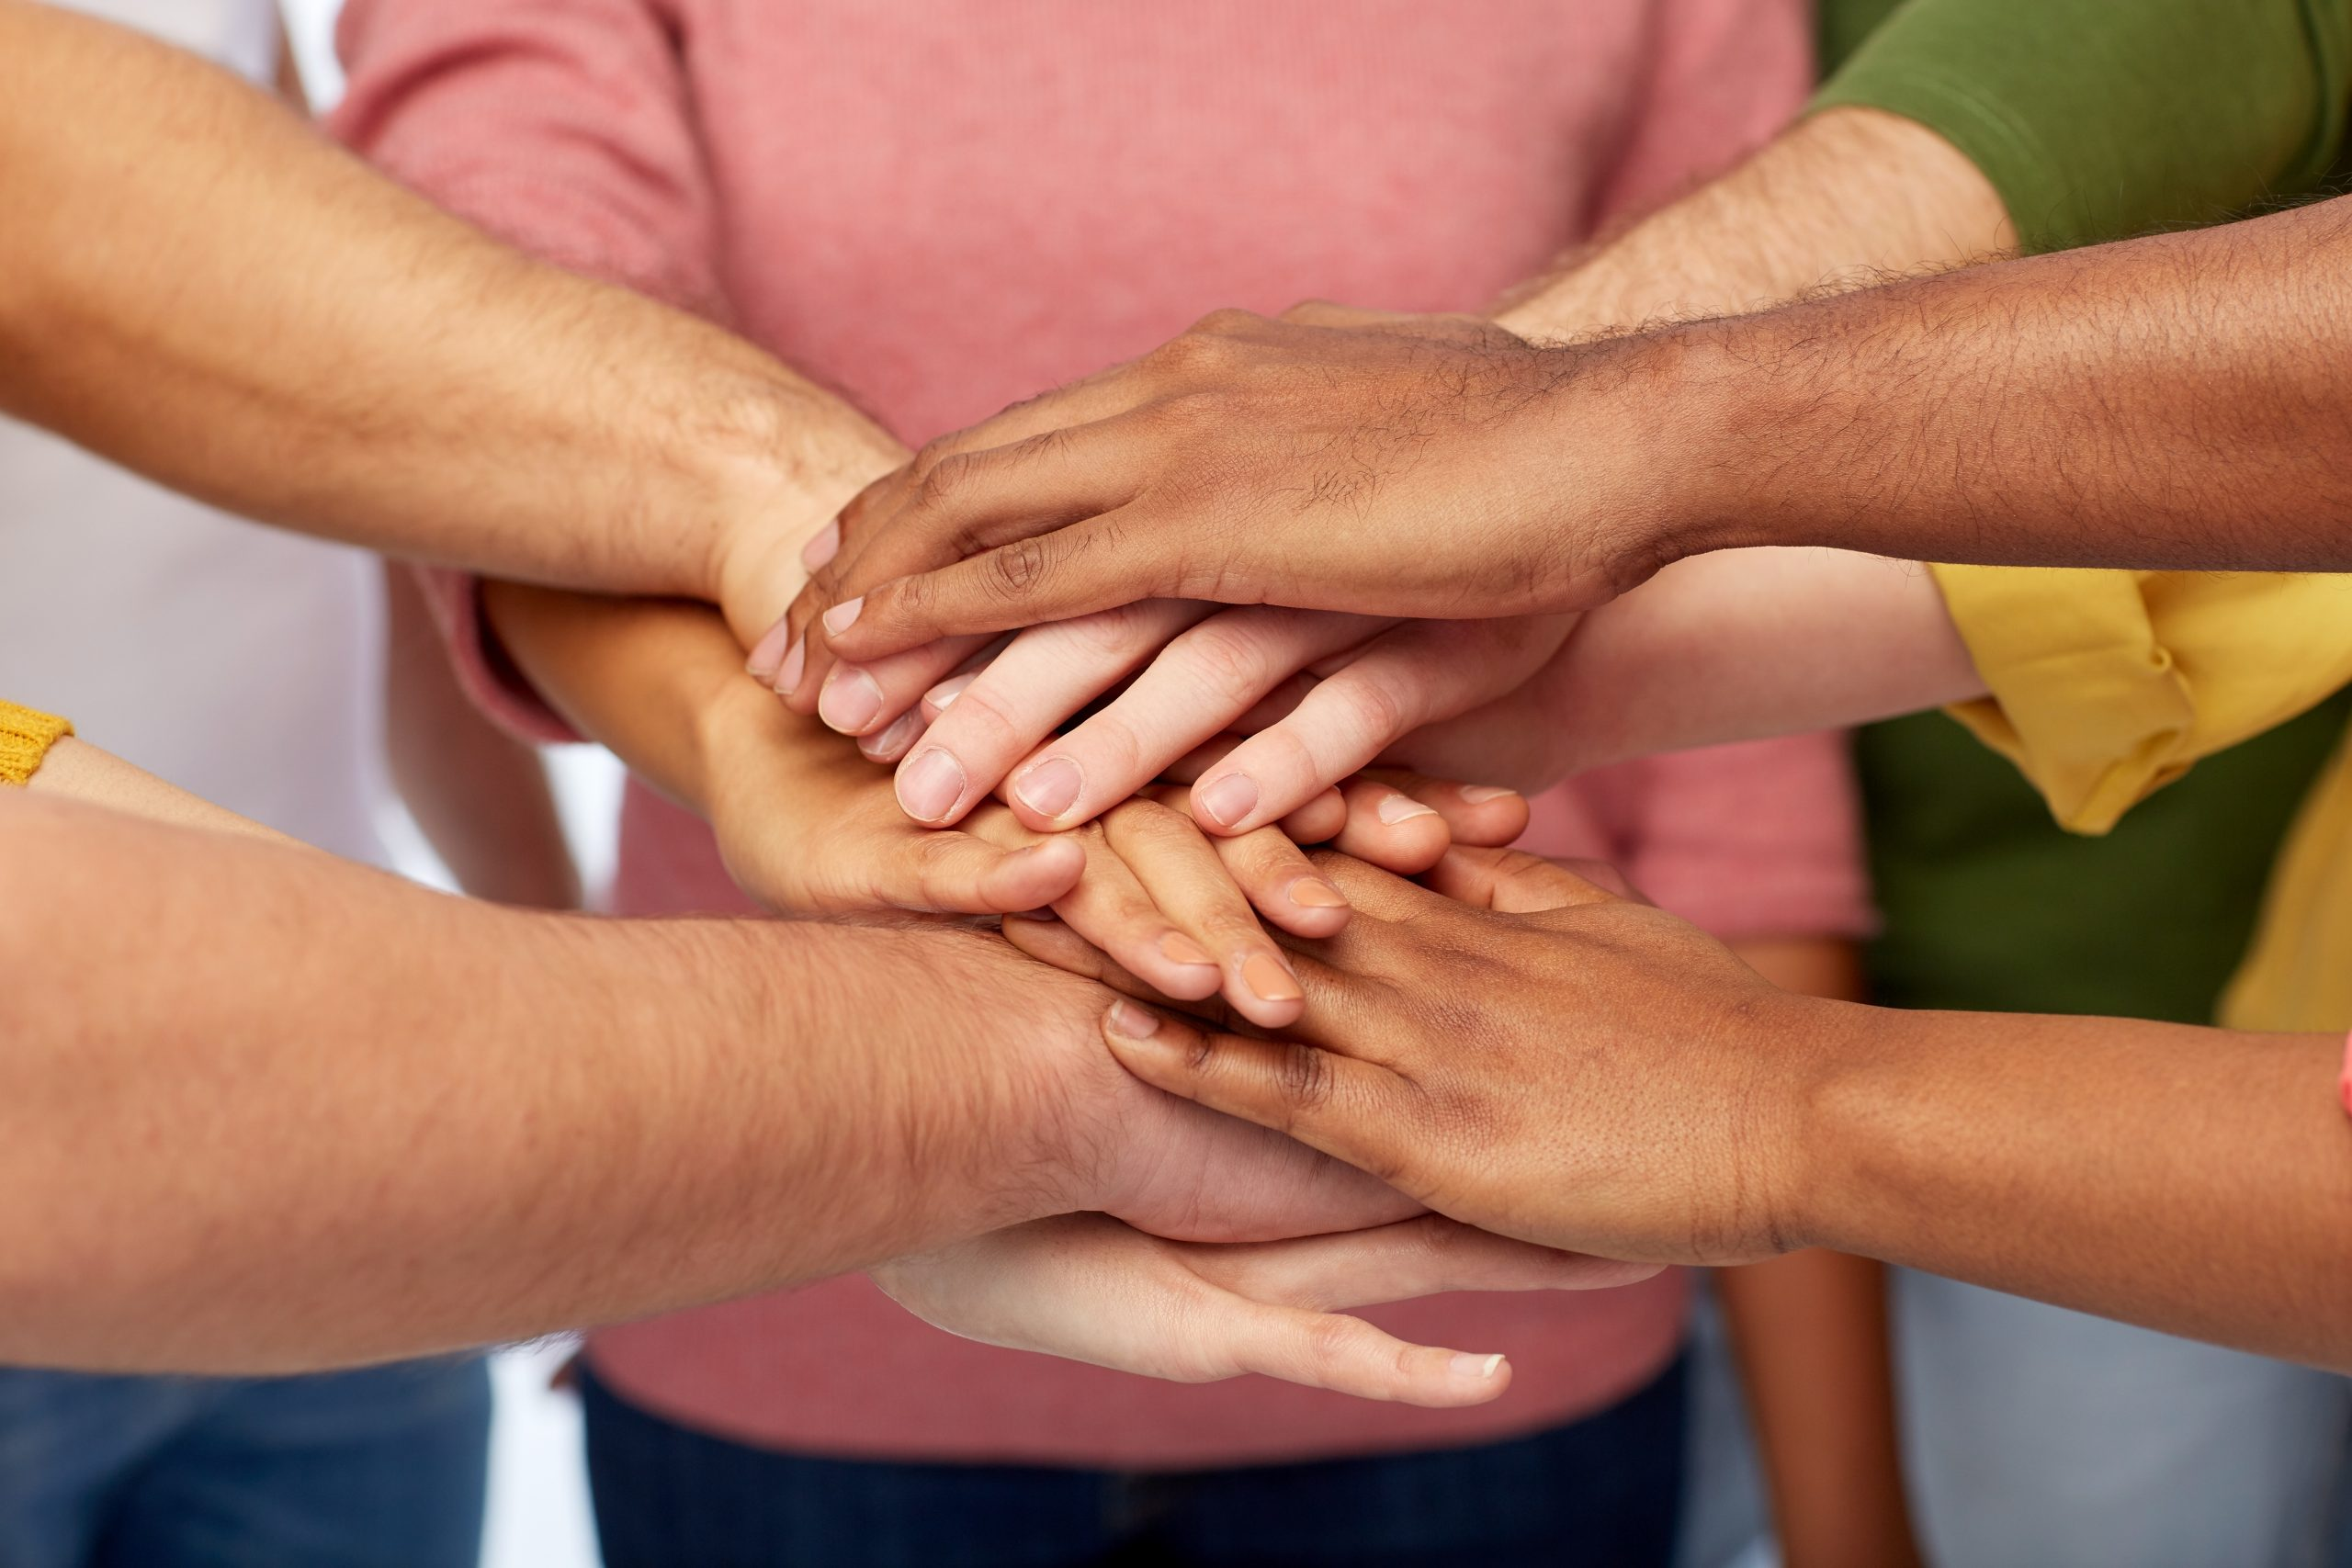 Team placing hands on top of one another's hands. Teamwork is what makes FSMG special